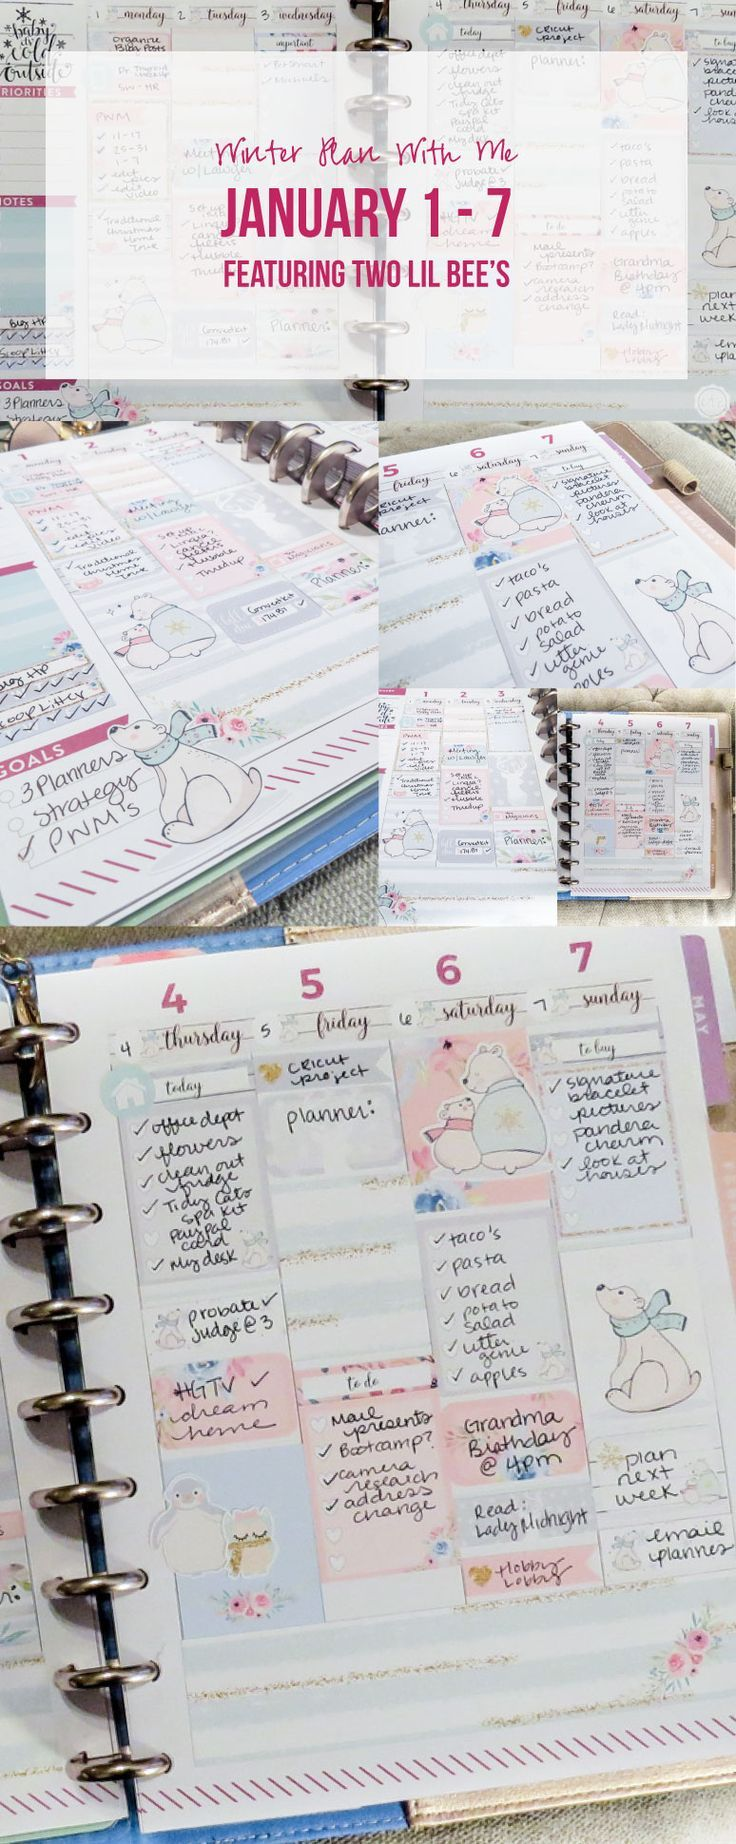 Winter Plan with Me January 1 - 7 featuring Two Lil Bee's